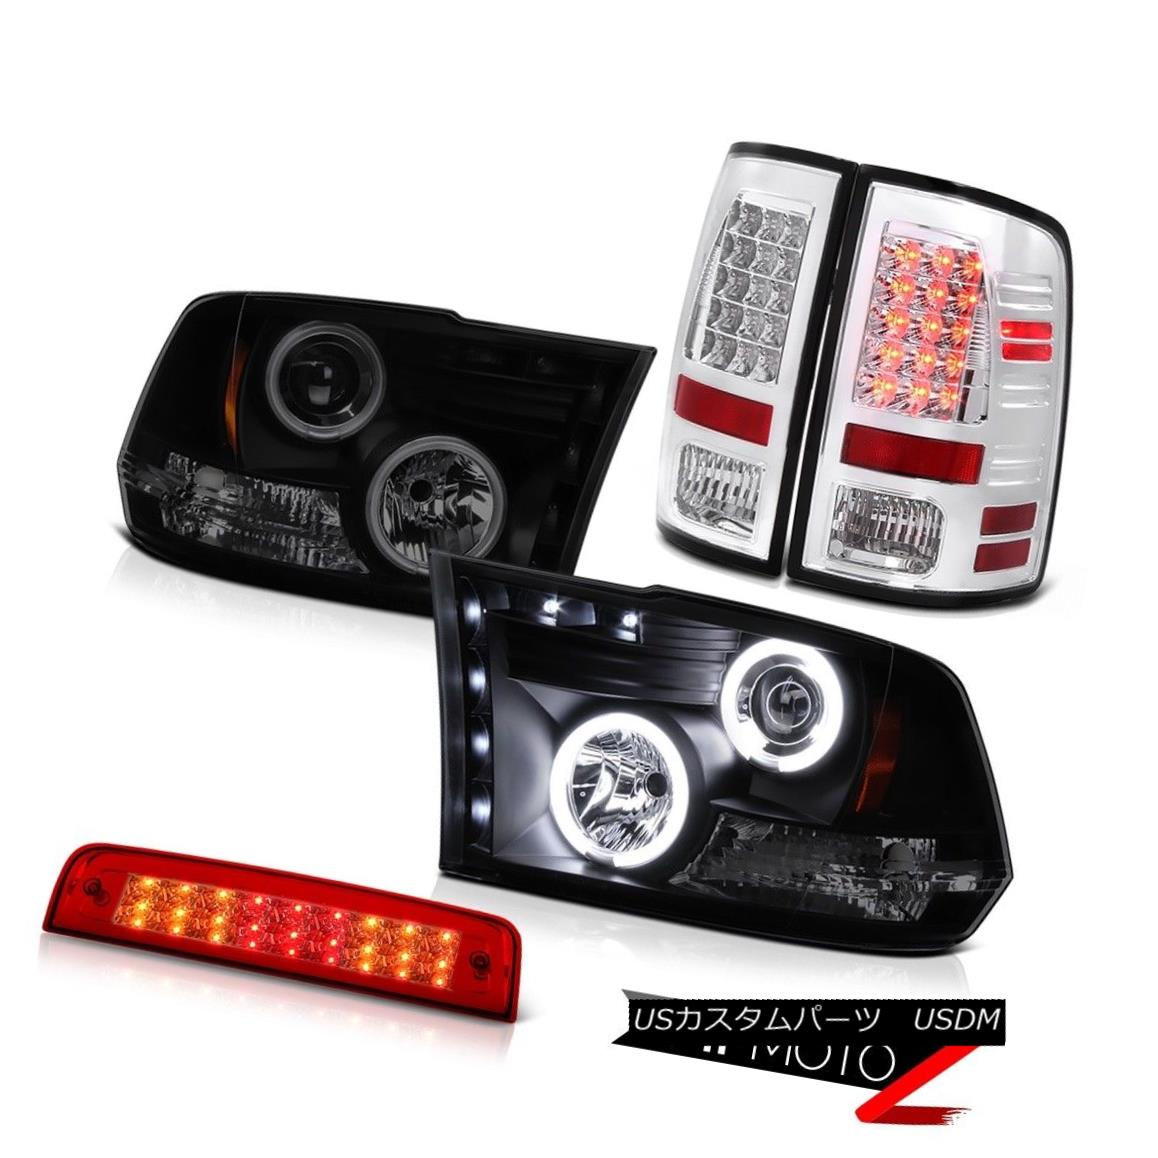 ヘッドライト 2010-2018 Ram 3500 Laramie Third Brake Lamp Rear Lights Headlights LED CCFL Halo 2010-2018 Ram 3500 Laramie第3ブレーキランプリアライトヘッドライトLED CCFL Halo